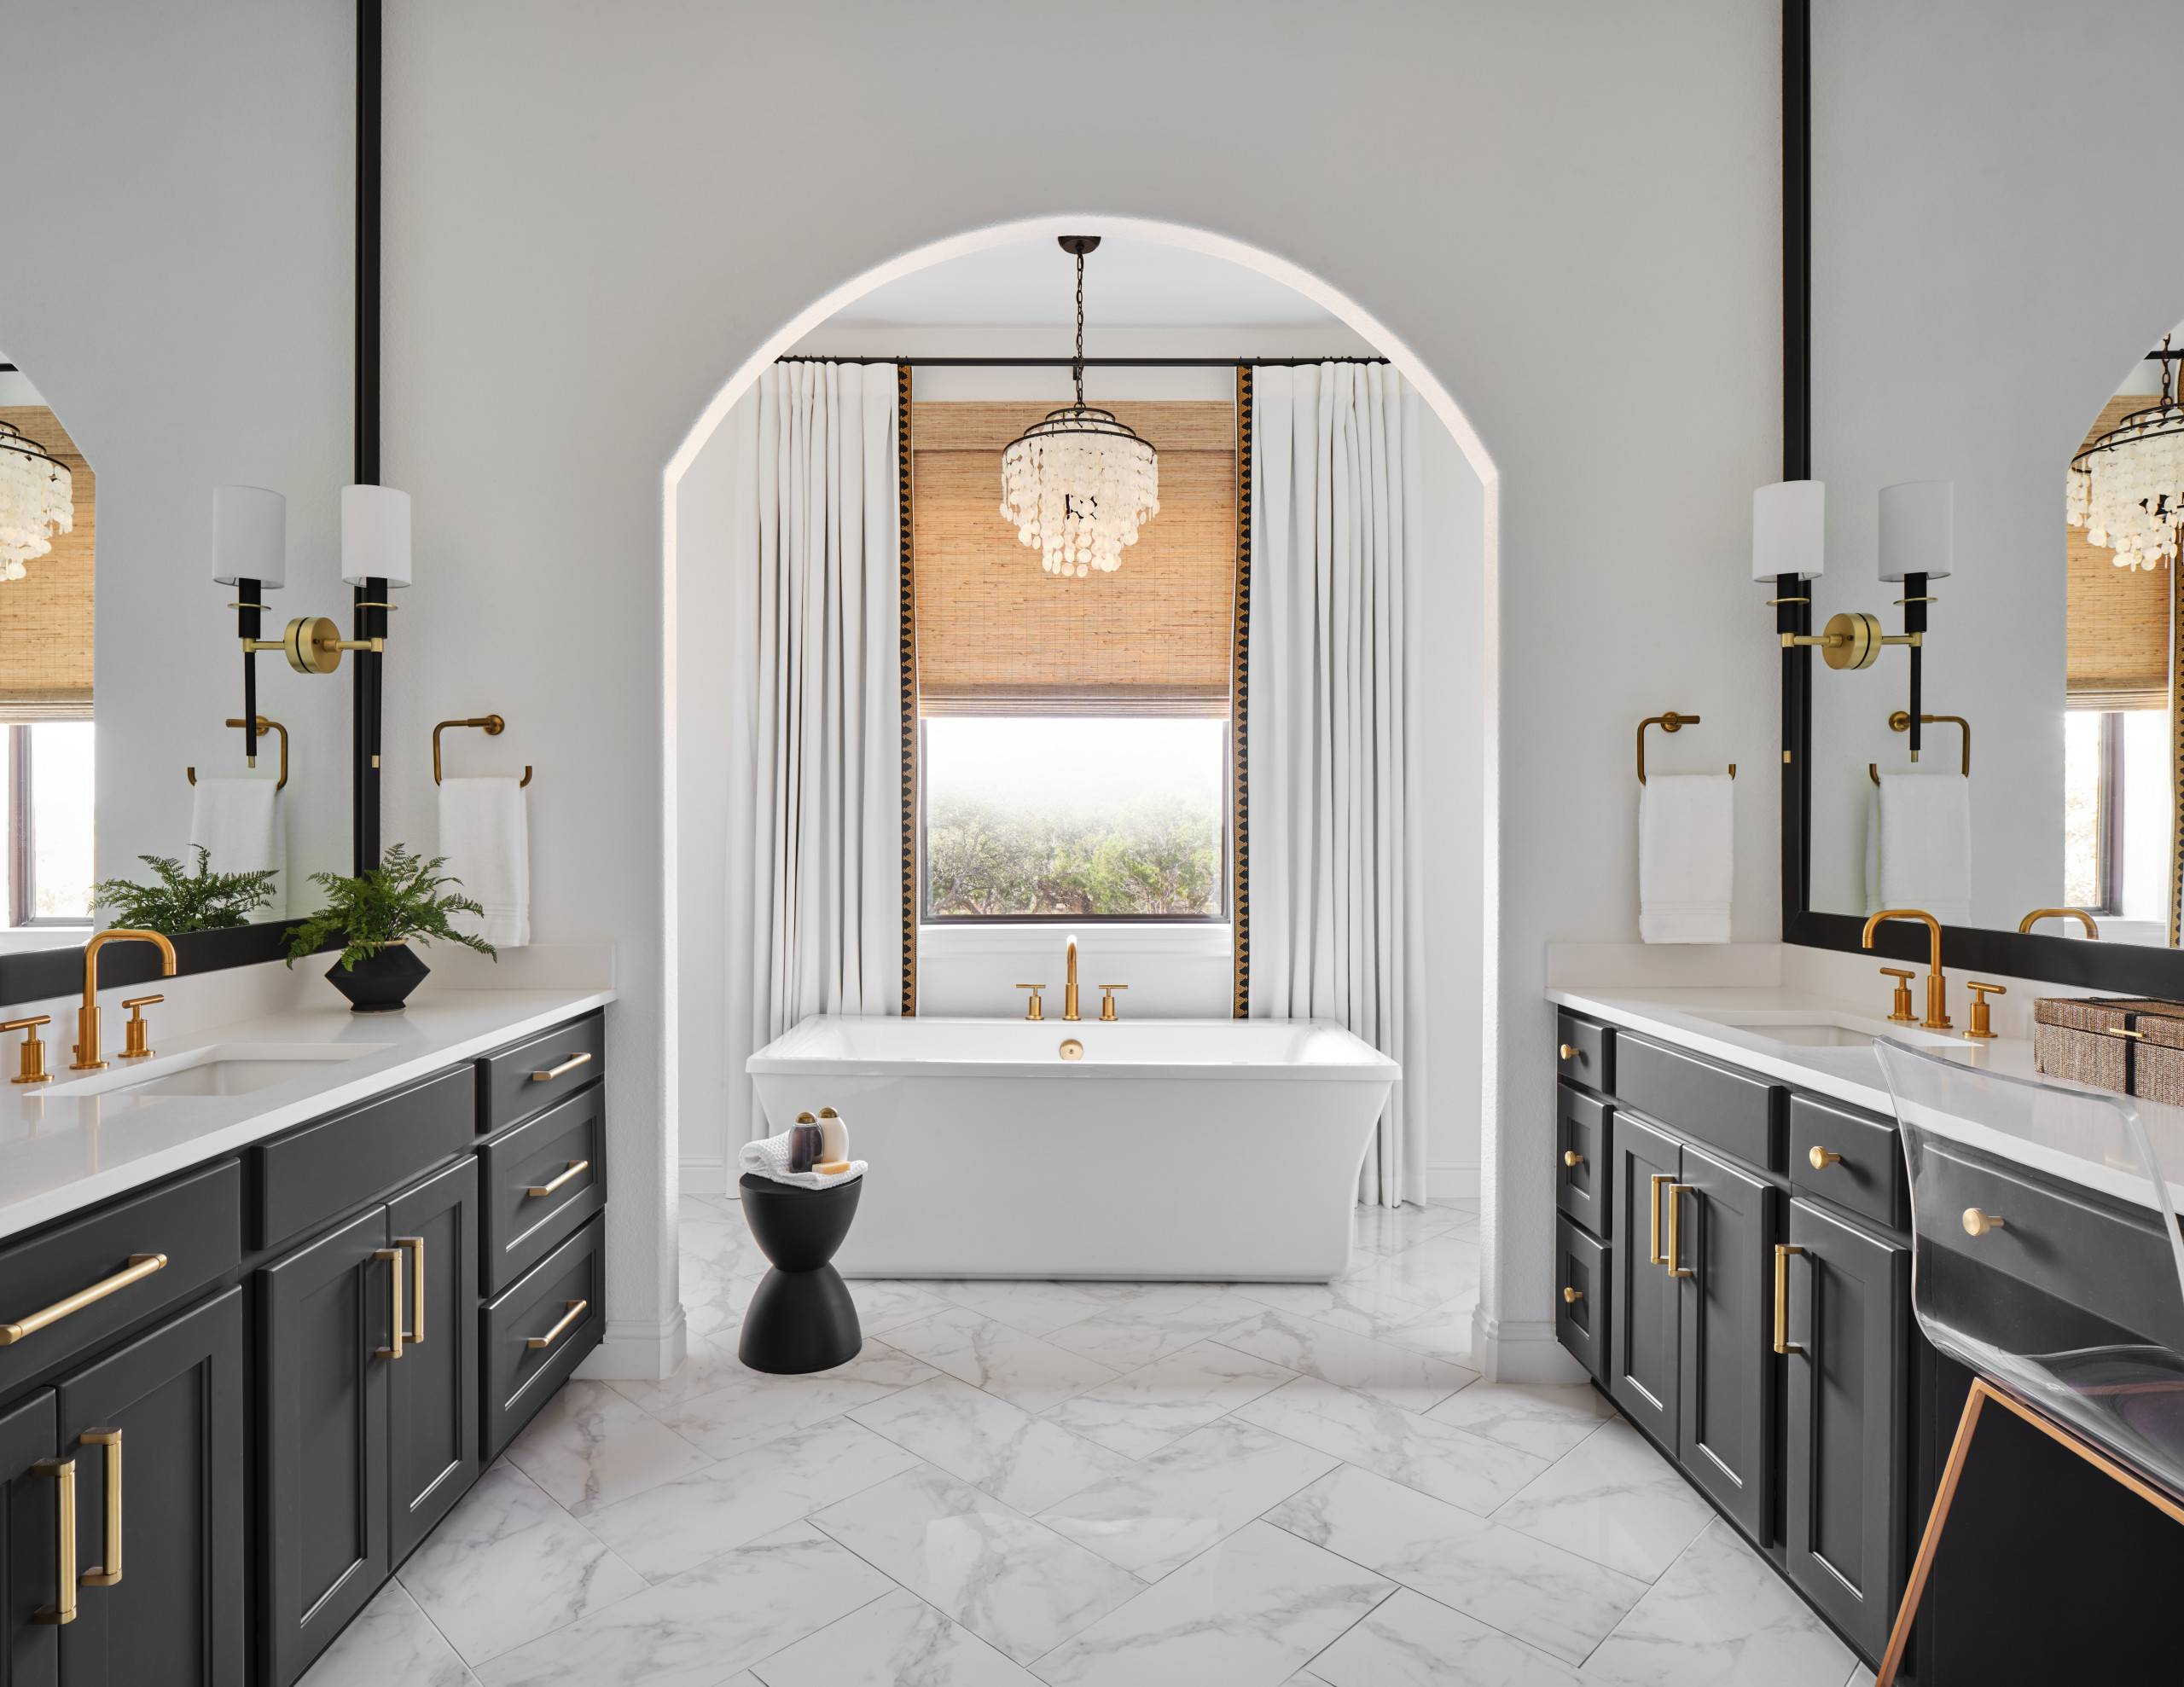 Lovely-use-of-archway-in-the-master-bathroom-makes-a-grand-visual-impact-53650